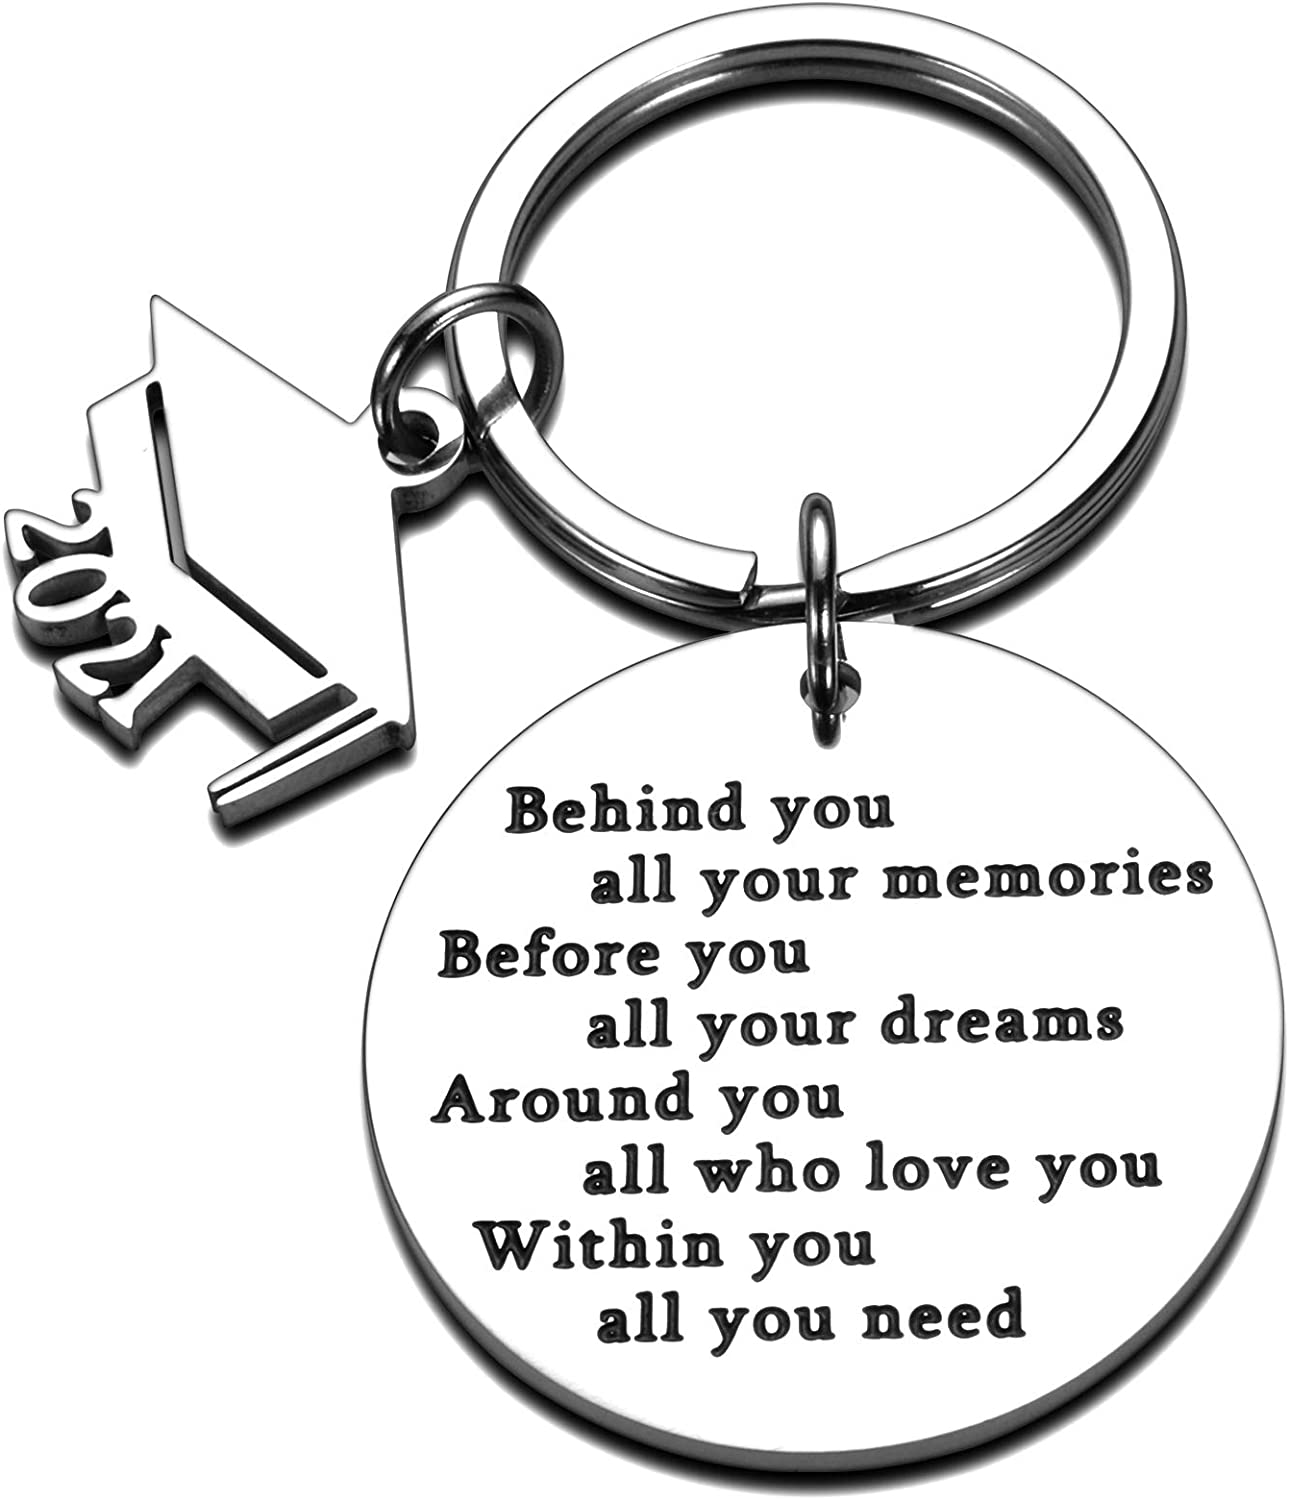 2021 Graduation Keychain Gift for Daughter Son Boys Girls Women Men Best Friends Class of 2021 Senior 2021 Inspirational Grad Gift for College Students Him Her Teen Teenagers Brother Sister Kids